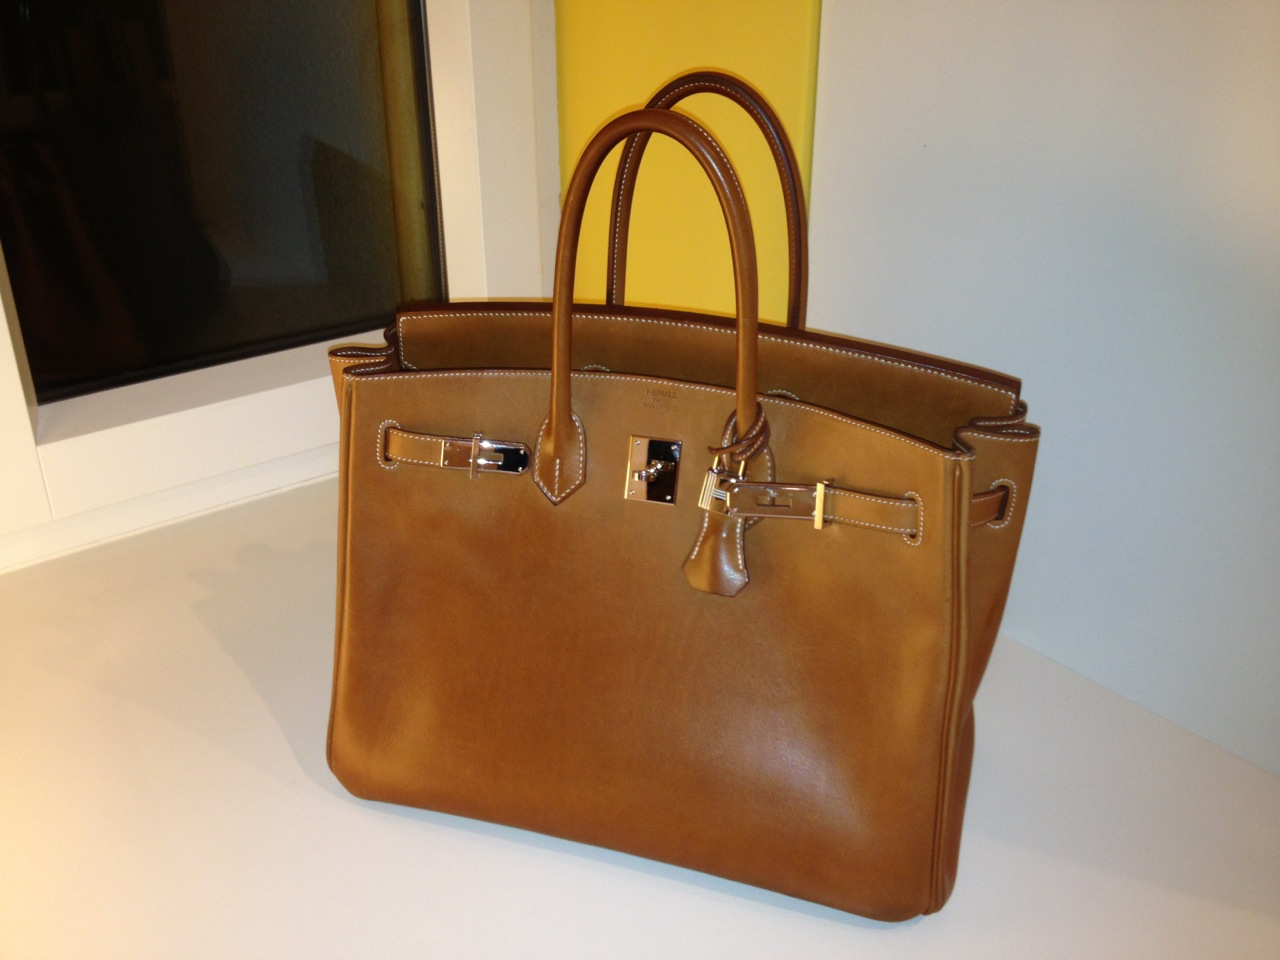 canada auth hermes kelly 40 ardennes leather in havana brown colour 2001  76293 d6095 0b361fc4eb962